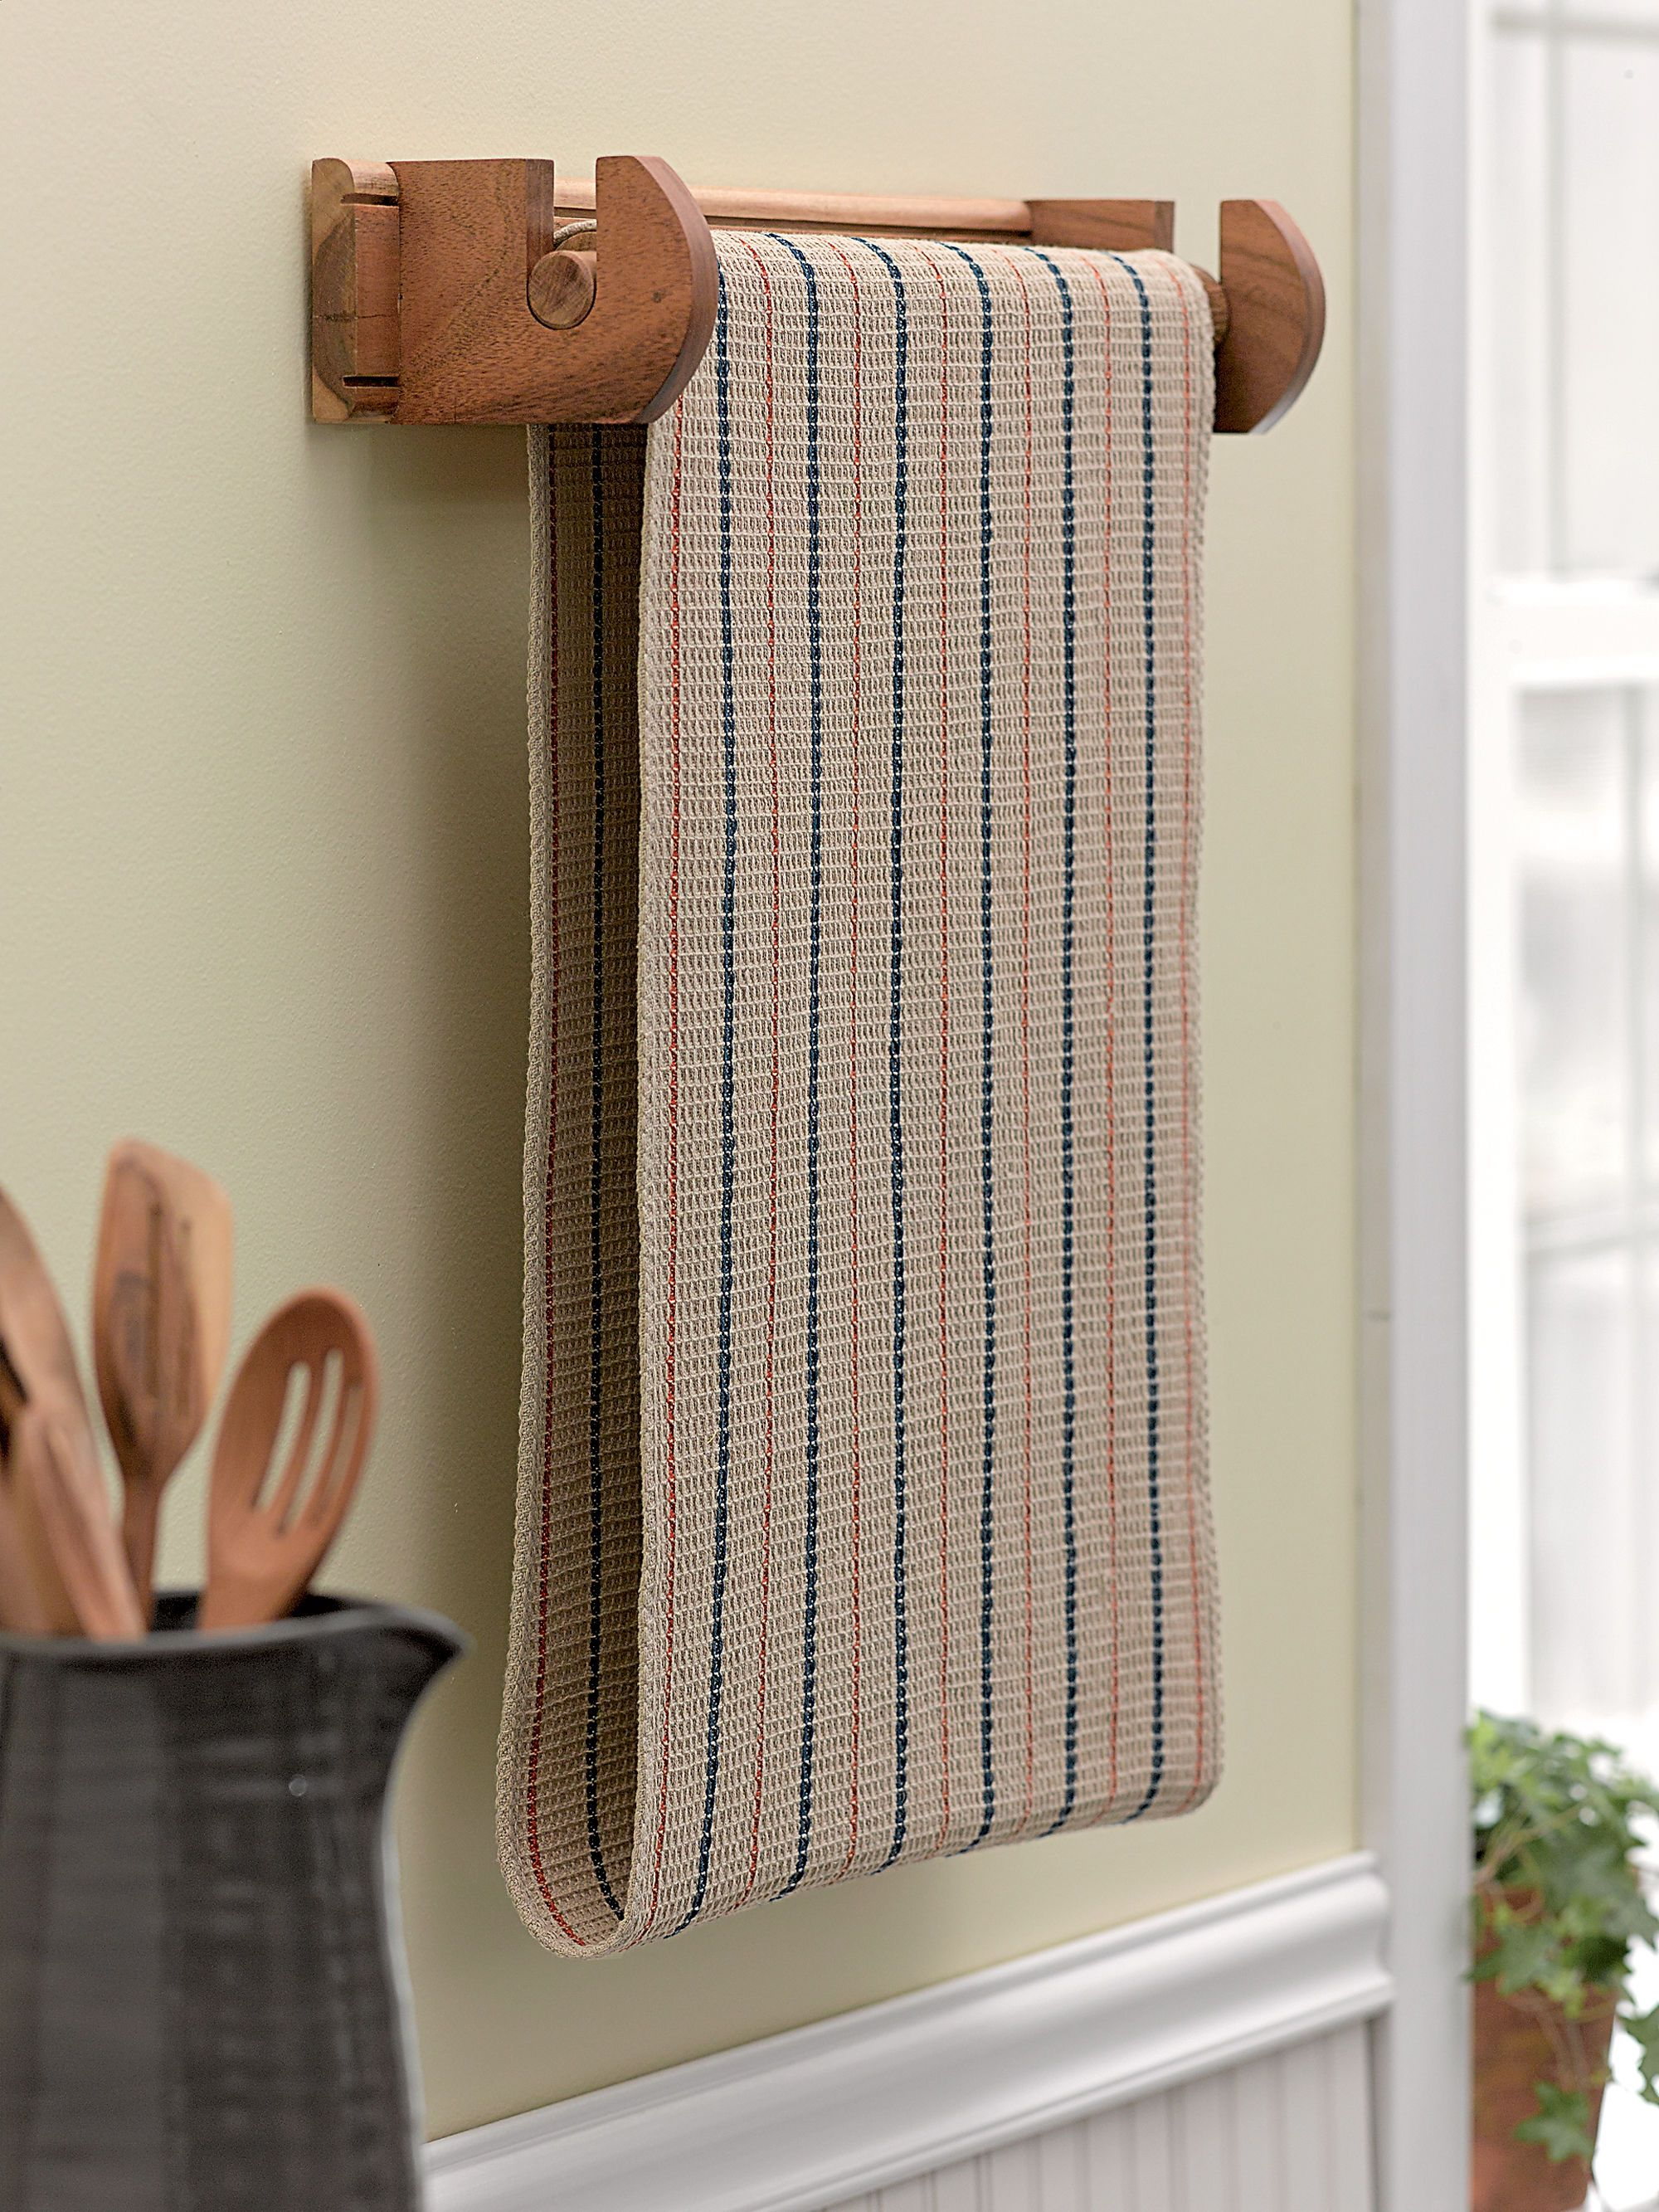 bathroom kitchen paper for target shocking towel under your bedroom style rack home awesome simple cabinet holder and wigandia pic files trends ideas sink